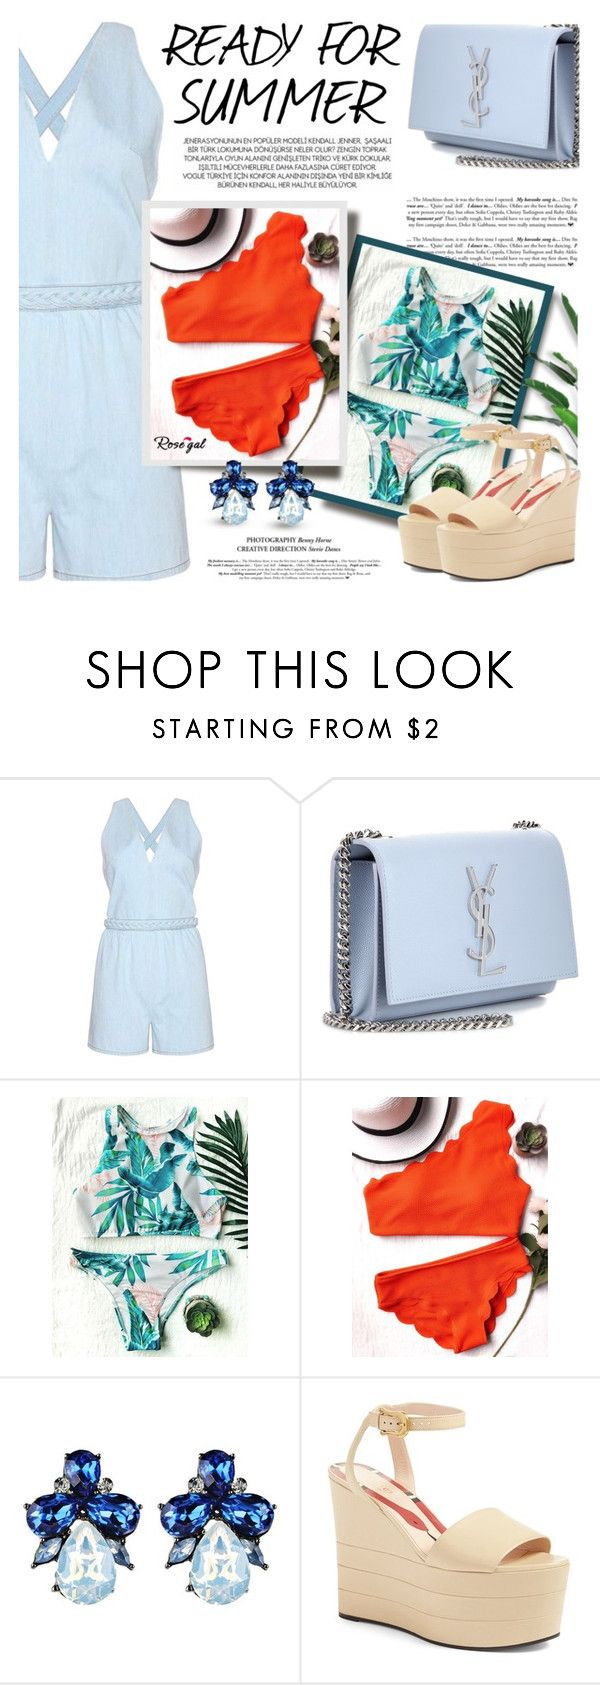 """Rosegal: Ready for Summer"" by defivirda ❤ liked on Polyvore featuring Valentino, Yves Saint Laurent, xO Design, Gucci, Summer, summerdate, summerroadtrip, summerbrights and summer2017"